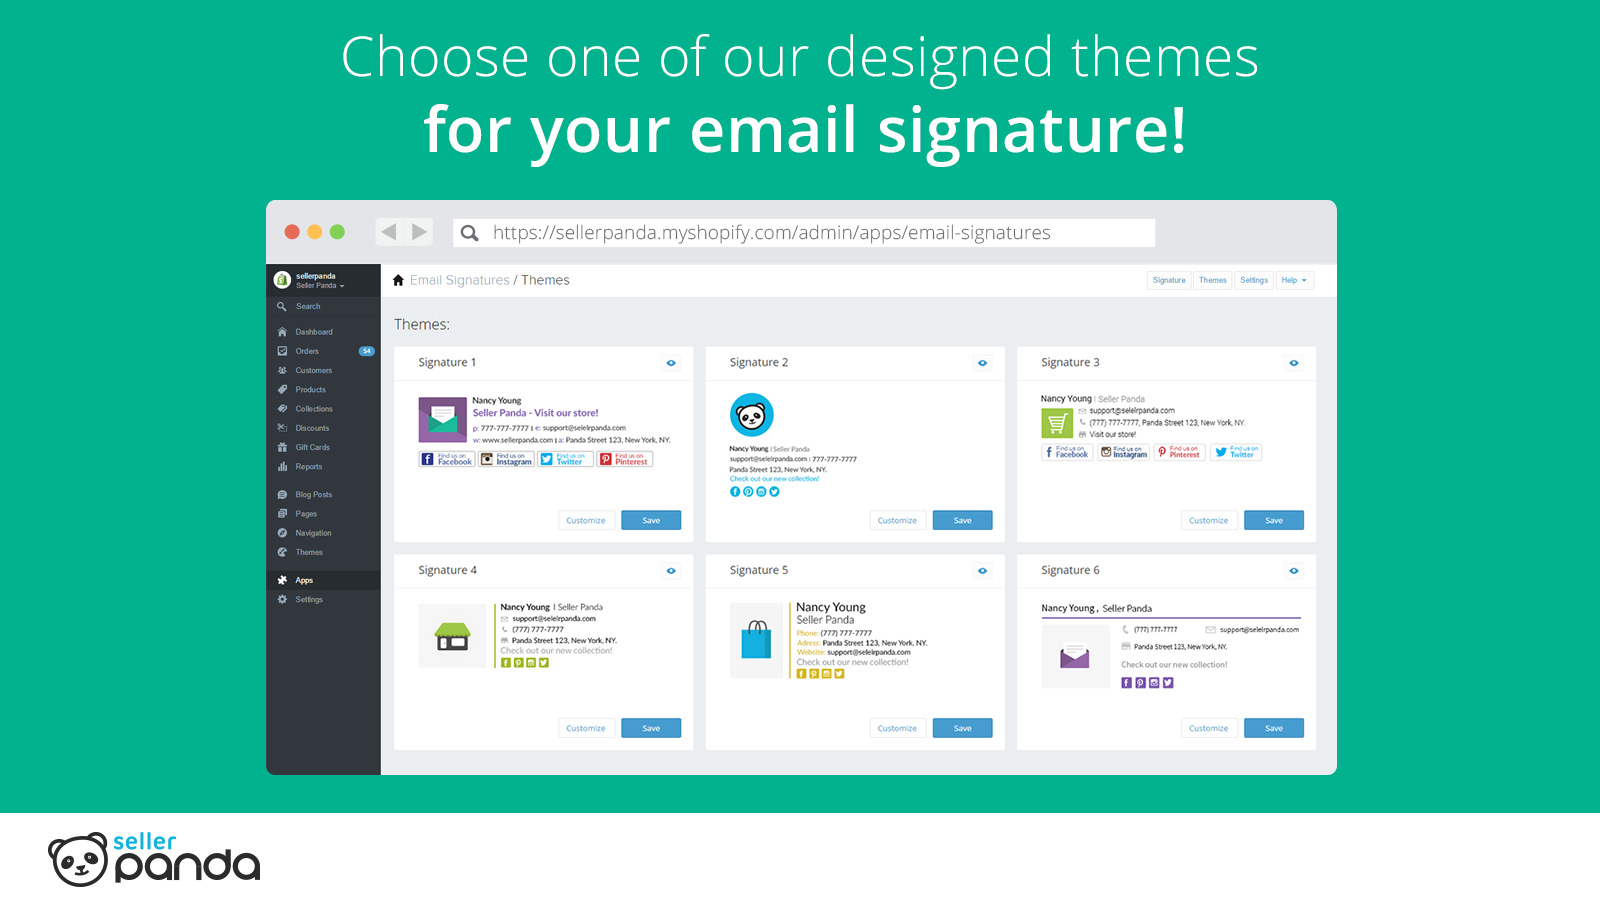 Choose from 6 different email signatures templates